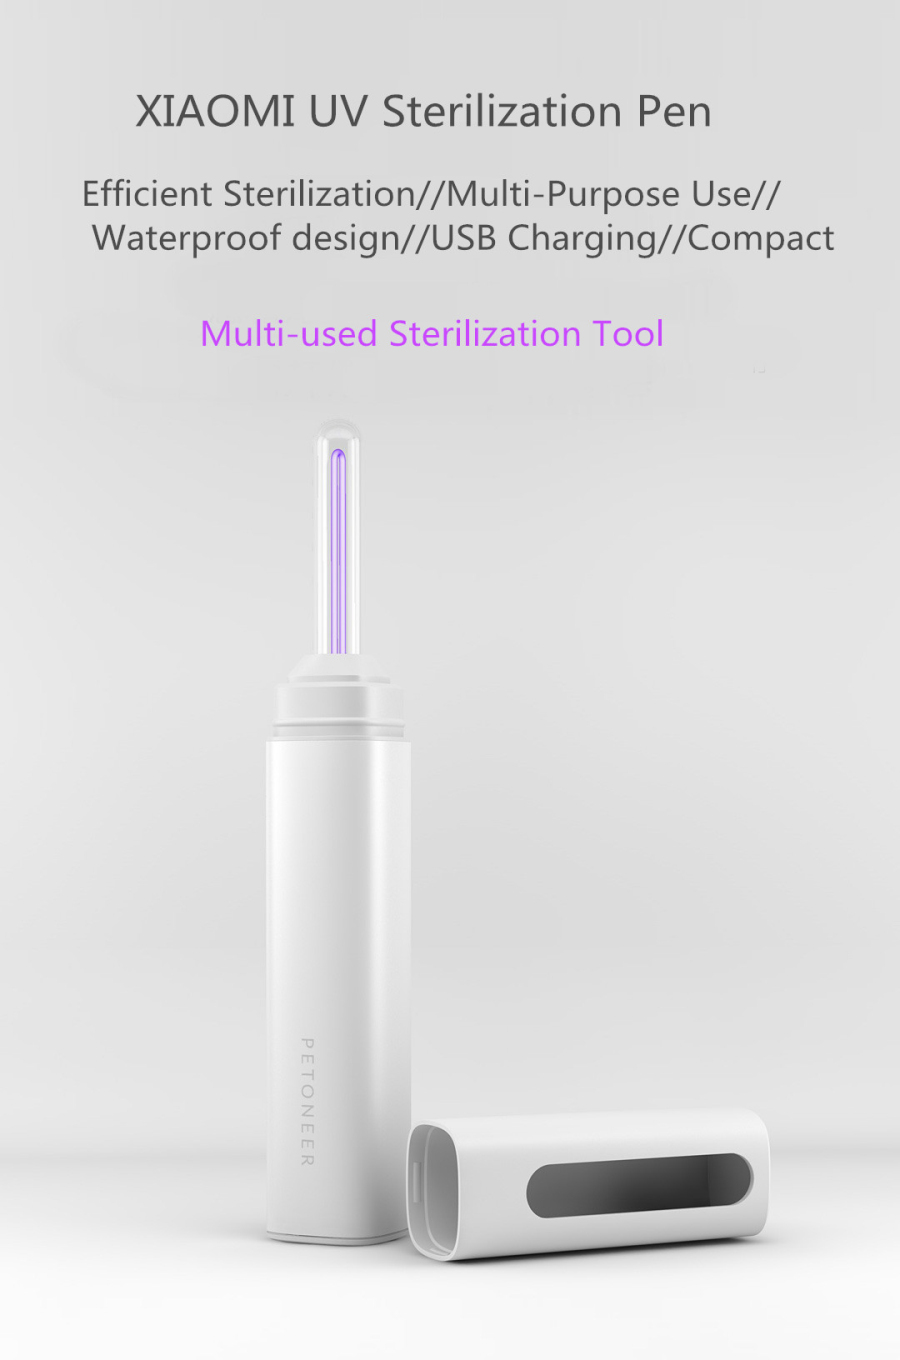 Cold Cathode 253.7nm UV Sterilization Pen USB Destroys Bacteria Health Protection Healthy Life Must-have Tool